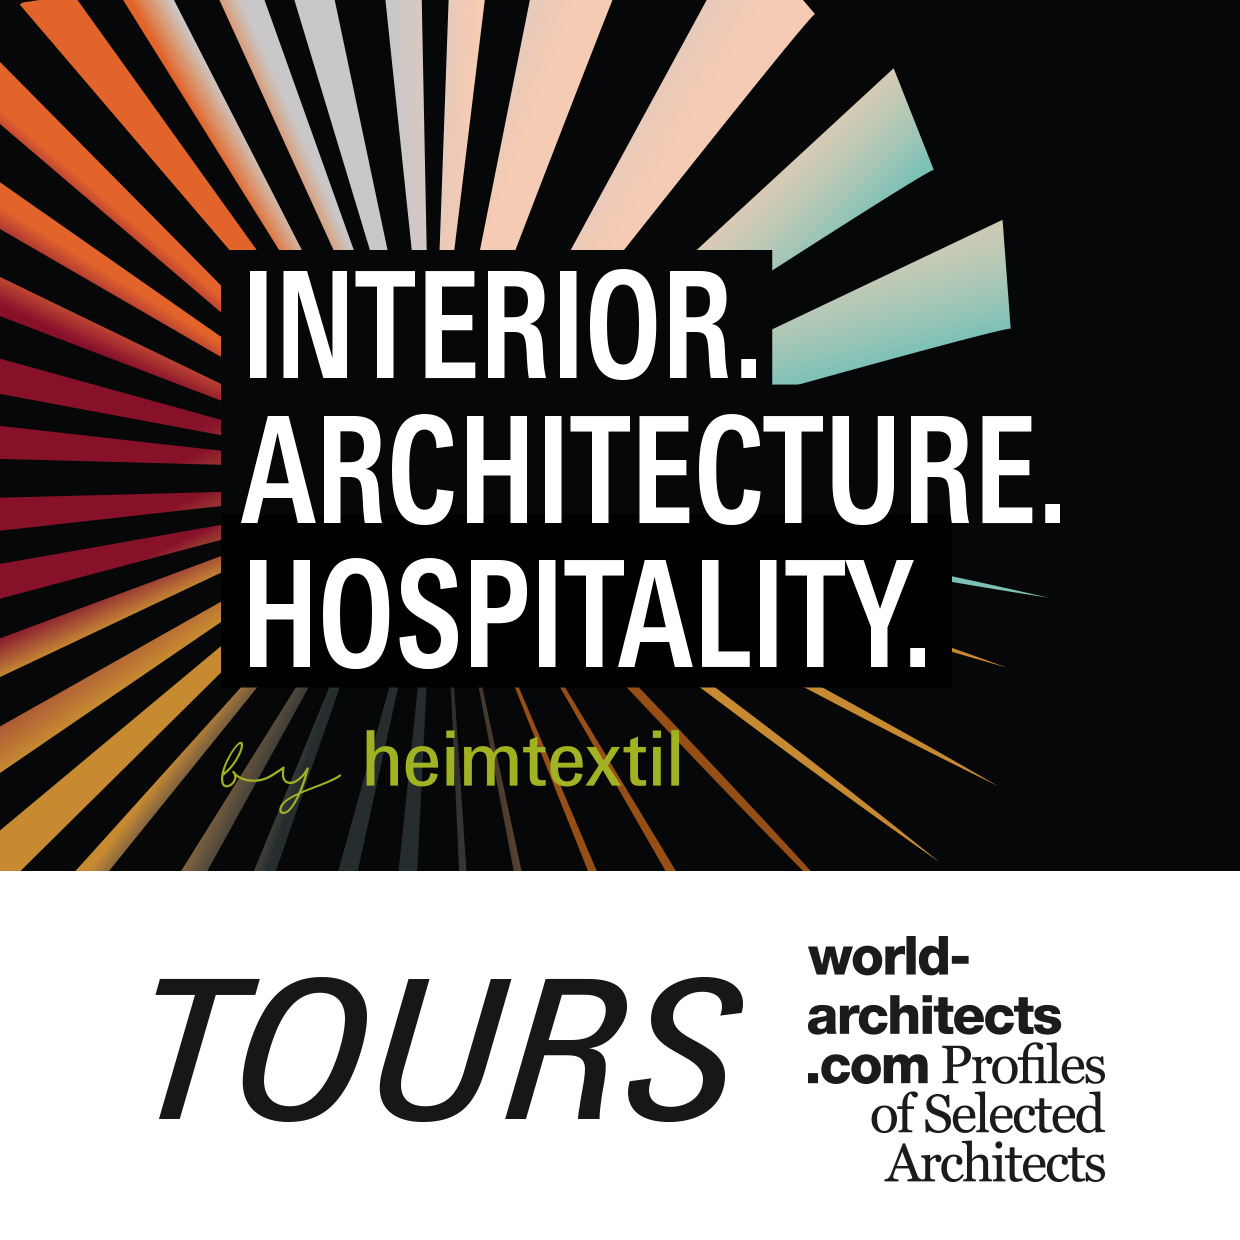 guided-tour-by-world-architects5